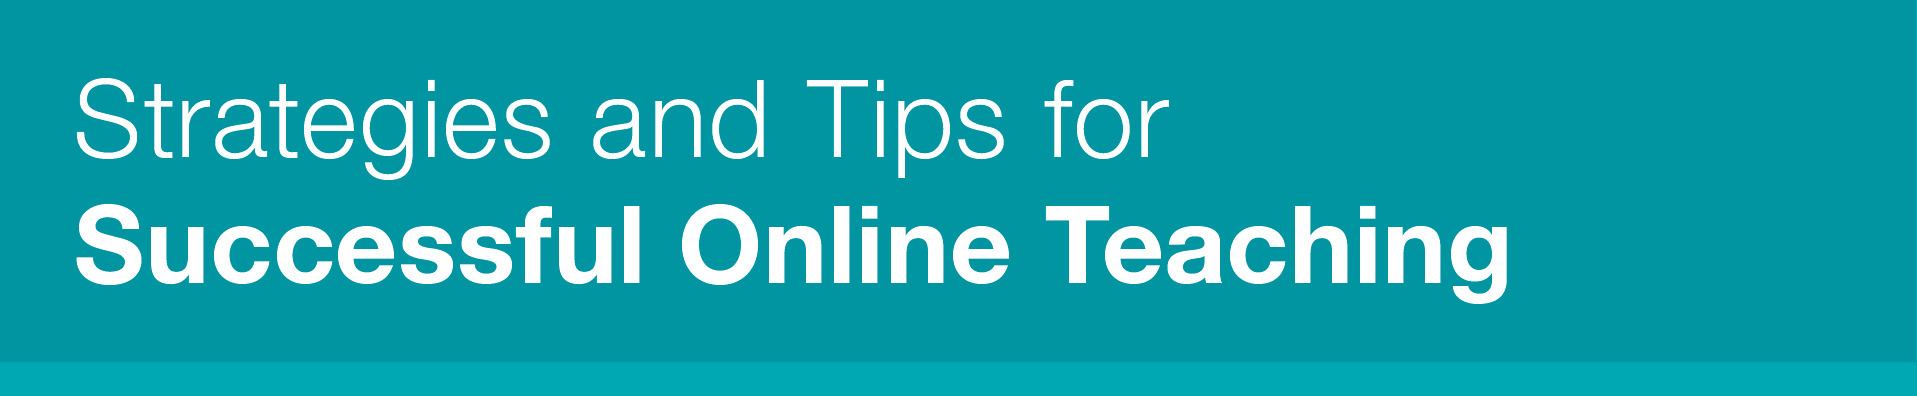 Strategies and Tips for Successful Online Teaching